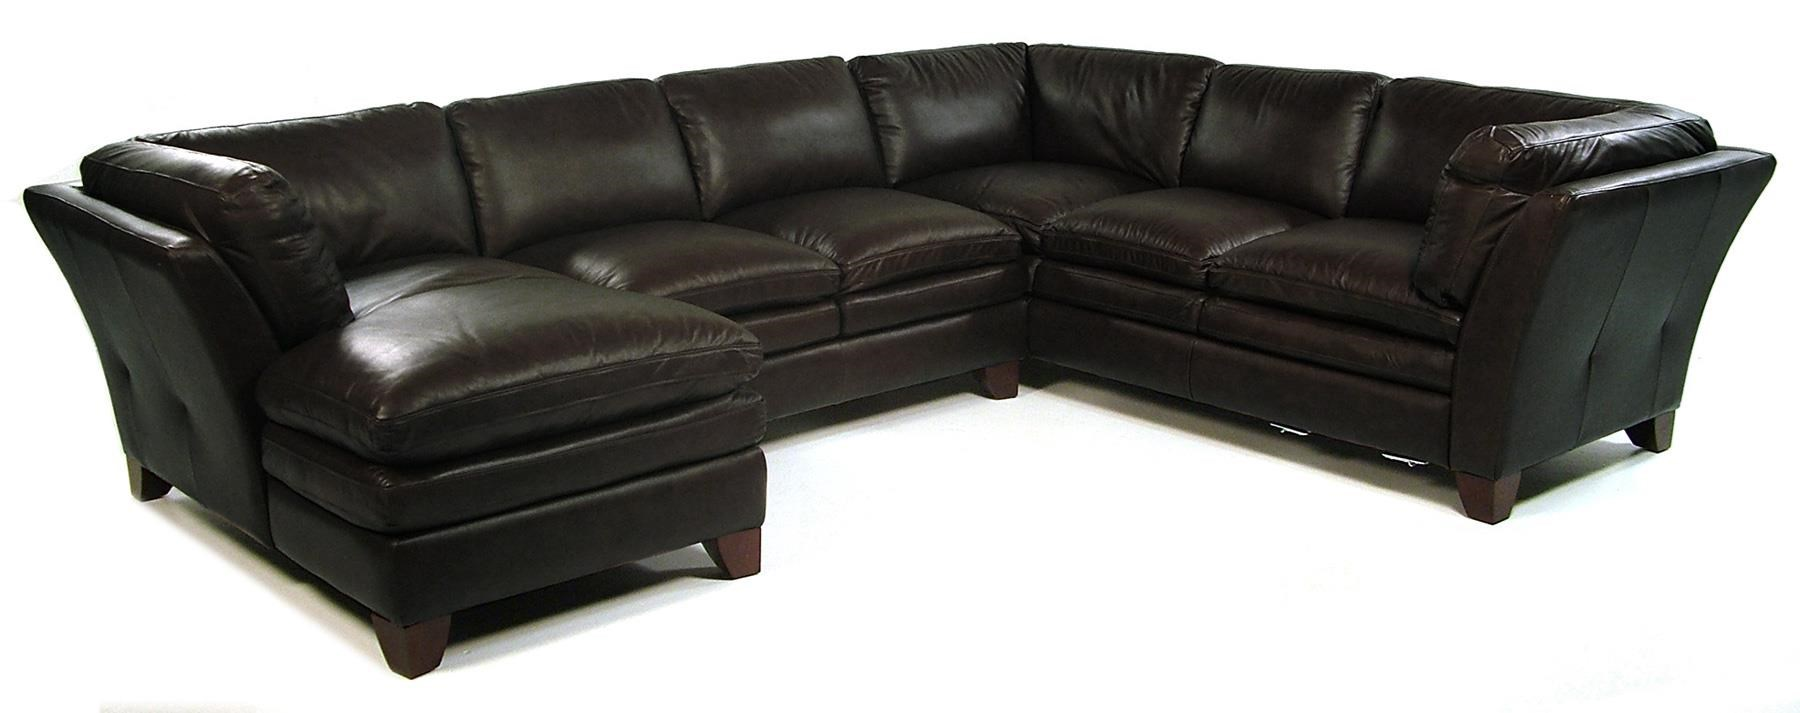 Loft Leather Pacific 3 Piece Sectional w/ LAF Chaise - Item Number: 7203-52+30+29